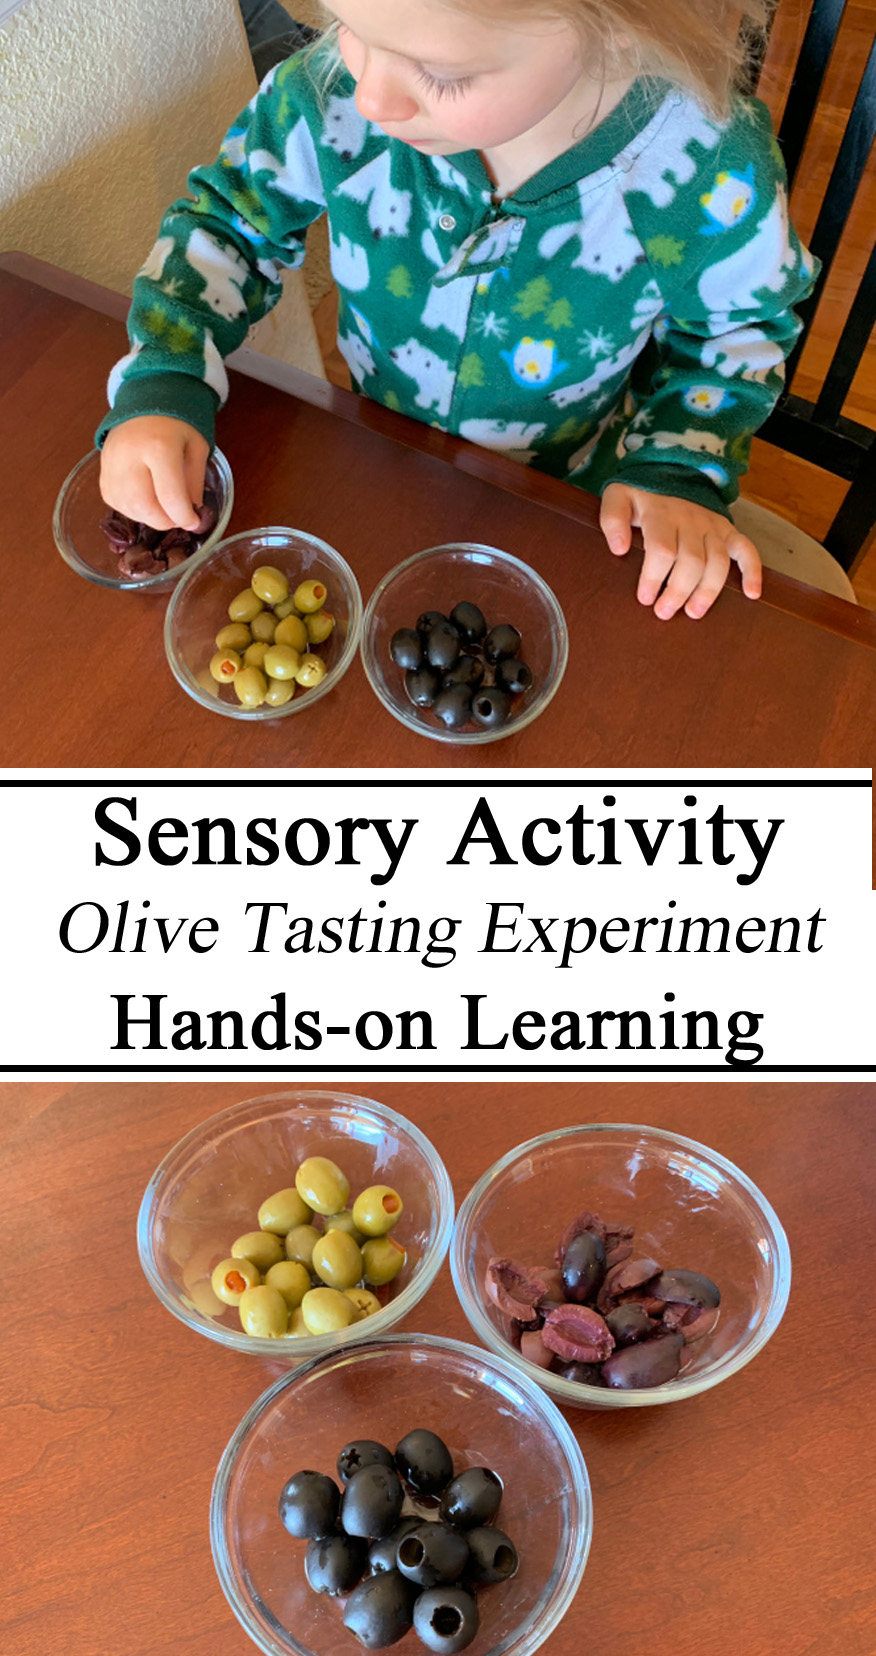 Sensory Activity, Olives, Olive Tasting, Preschool, Preschool Activities, Hands on Learning, Sensory, Israel Travel Unit